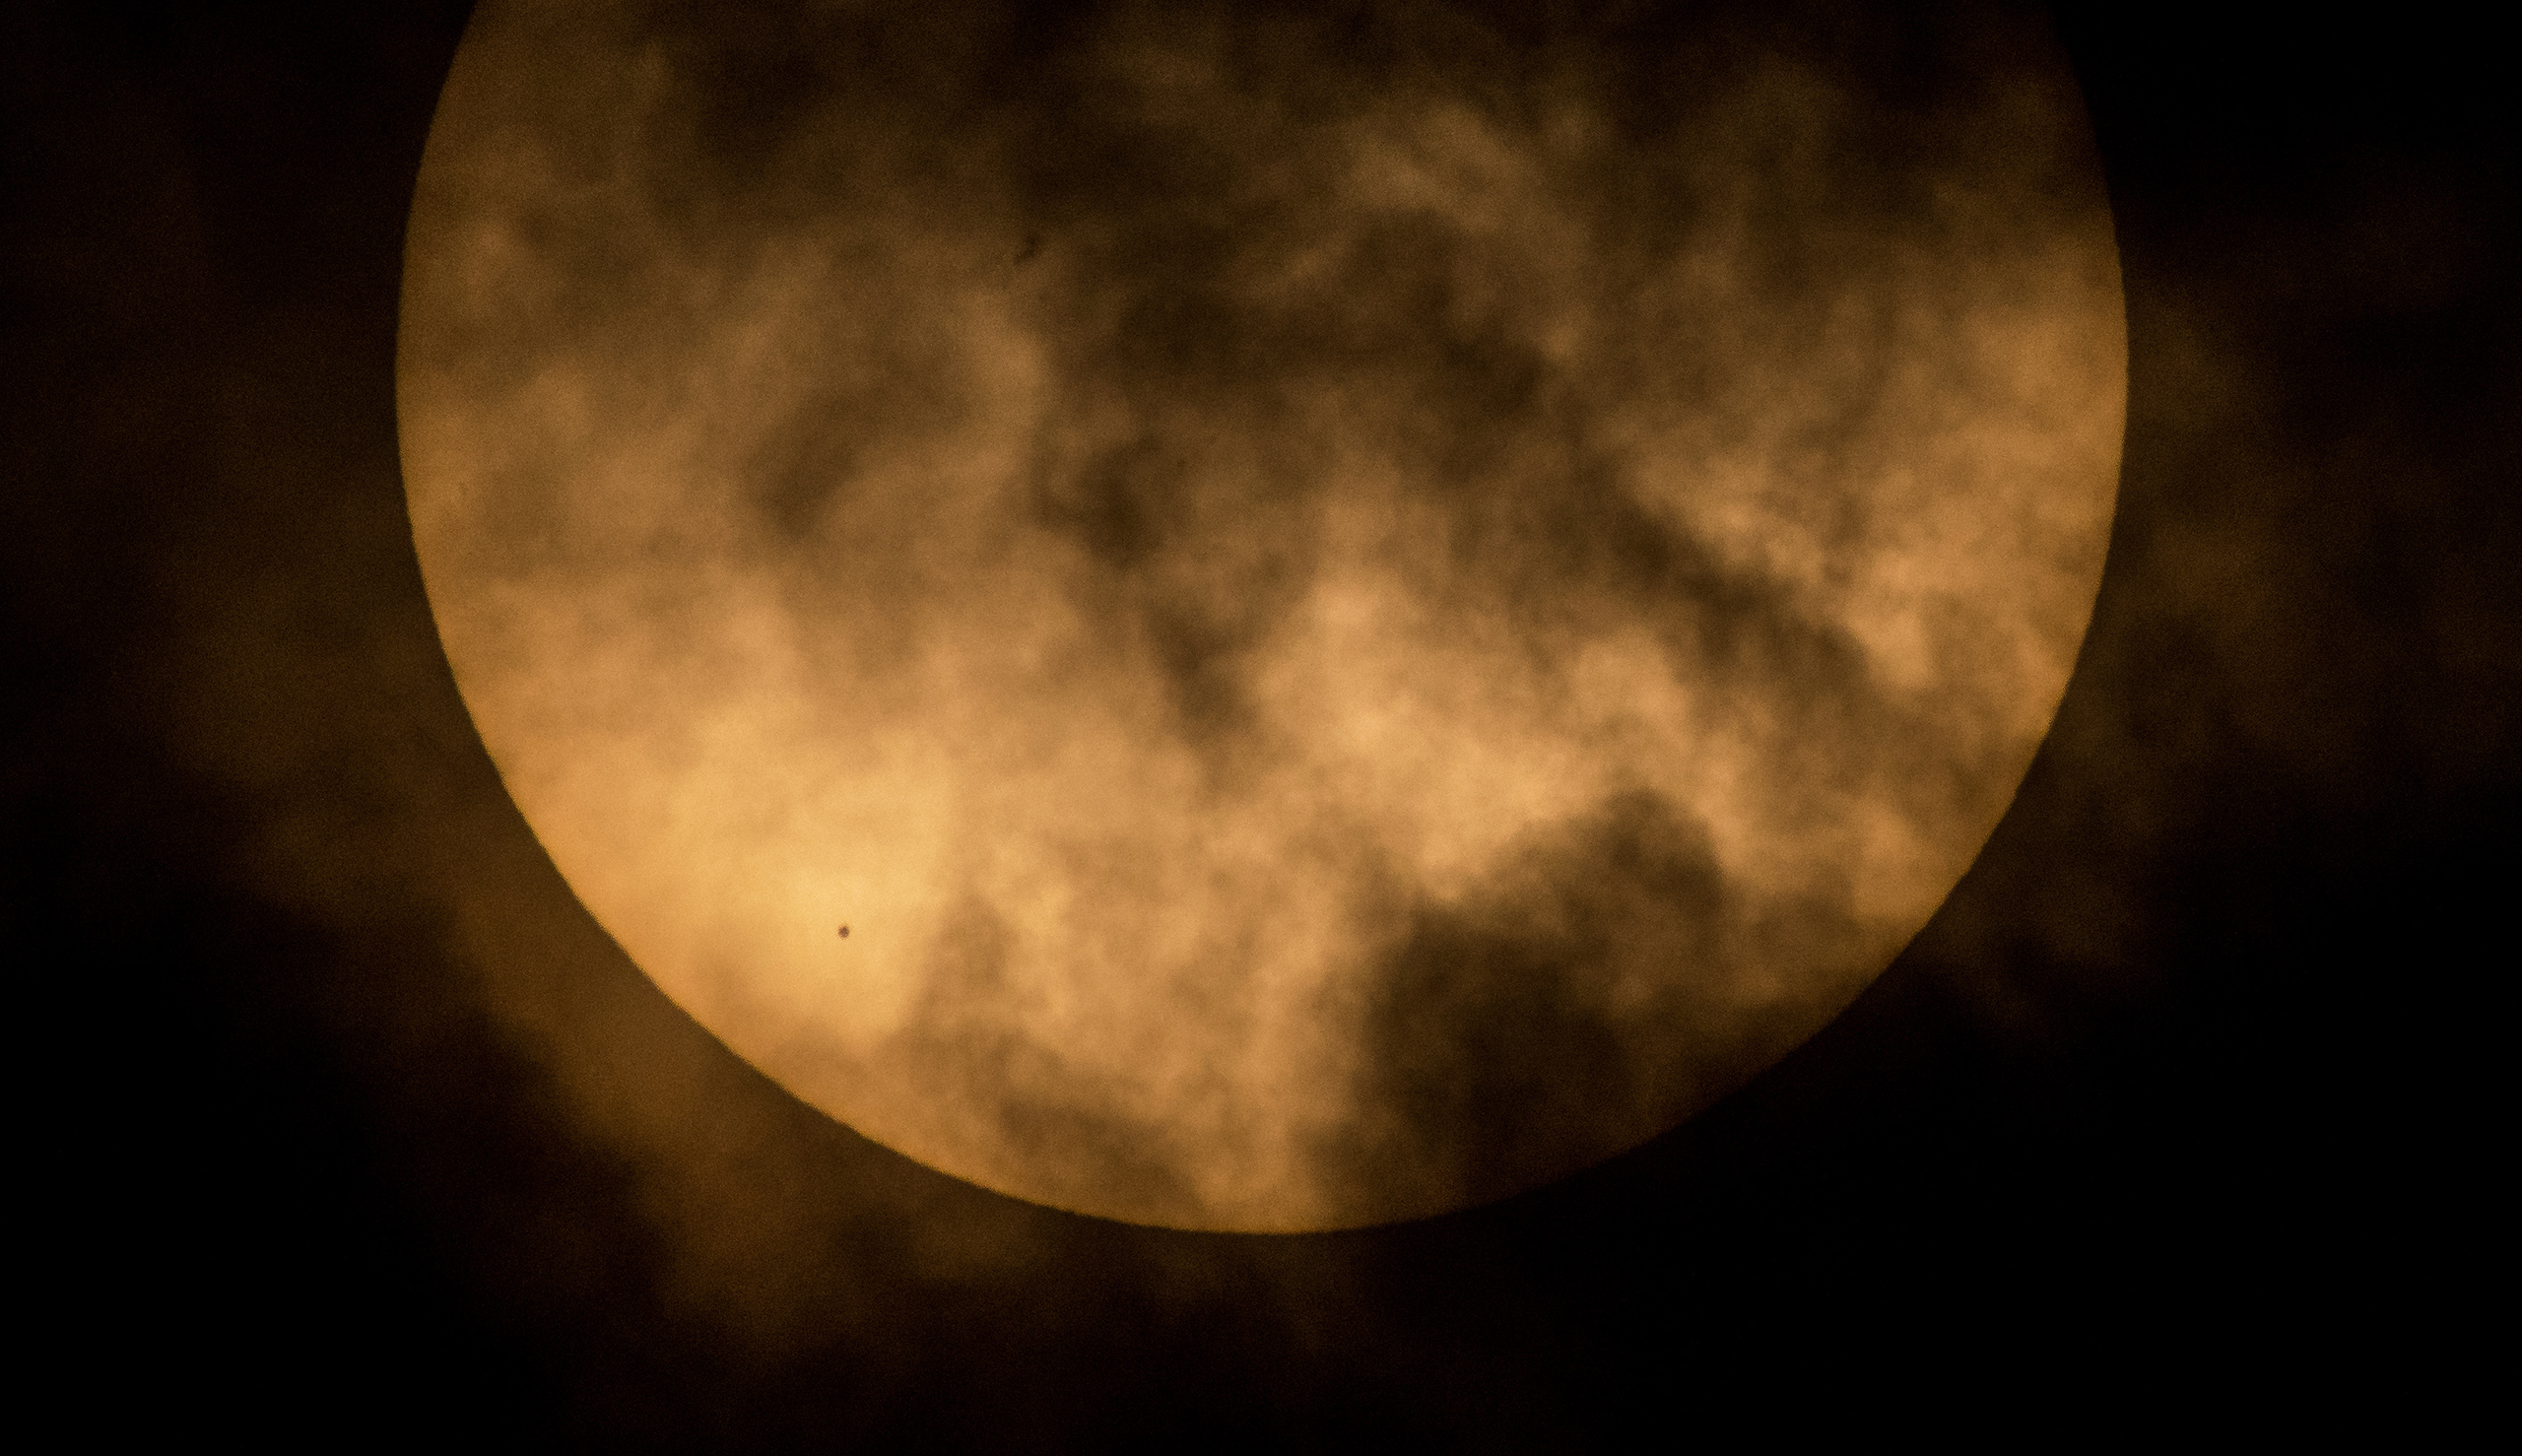 The planet Mercury is seen in silhouette, lower left, as it transits across the face of the sun in this photo taken from NASA Headquarters in Washington, DC., May 9, 2016.